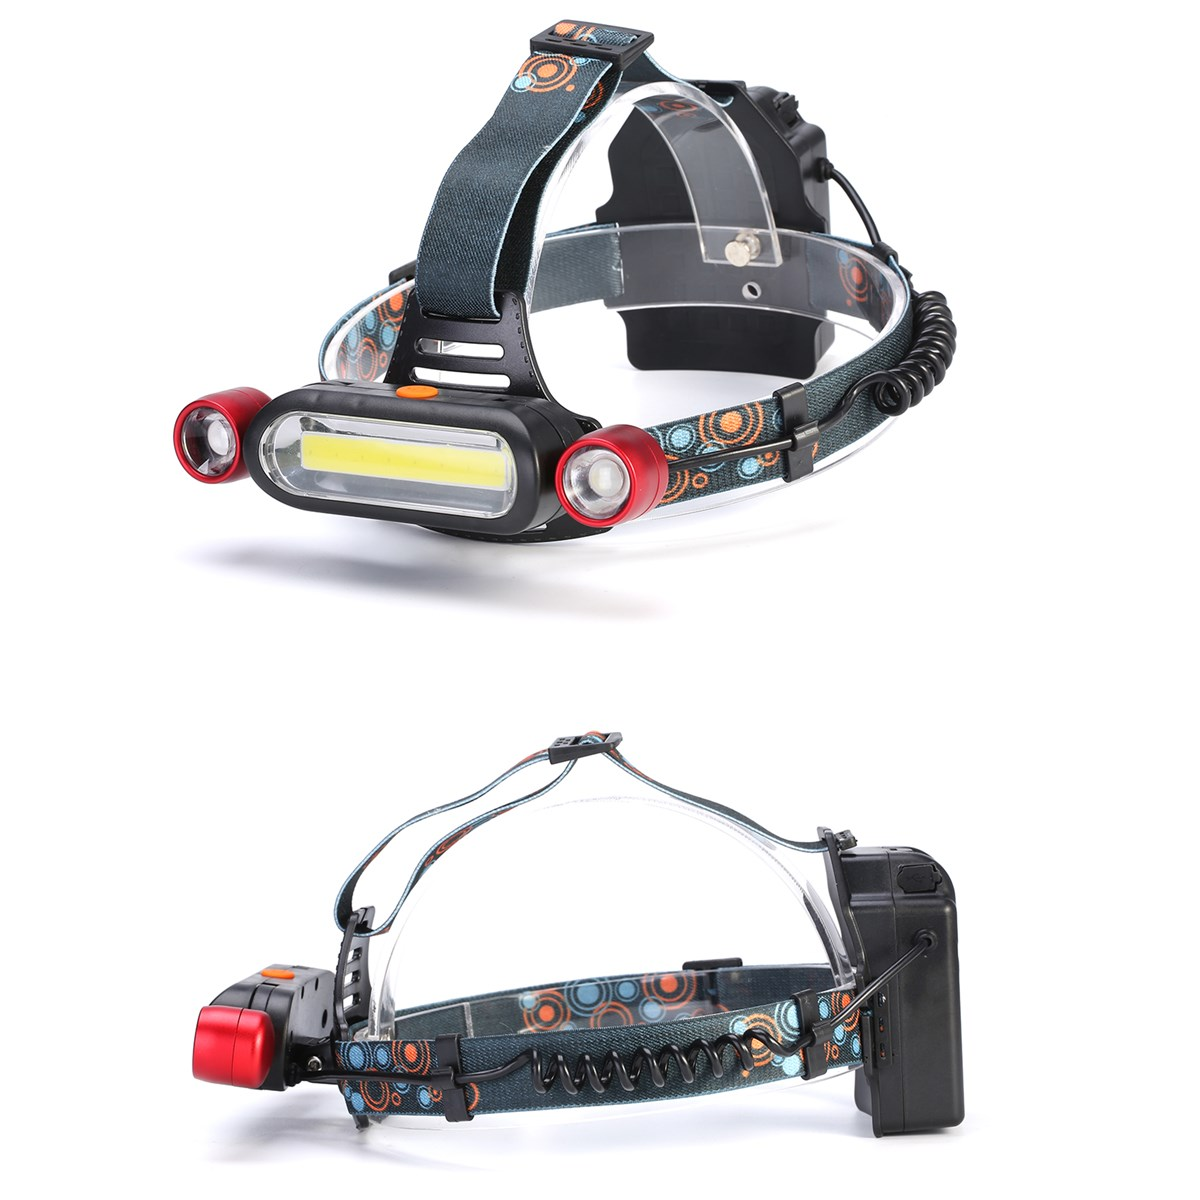 XANES 1300LM 2 x T6 LED COB Rechargeable 18650 Battey Headlamp Head Light Torch